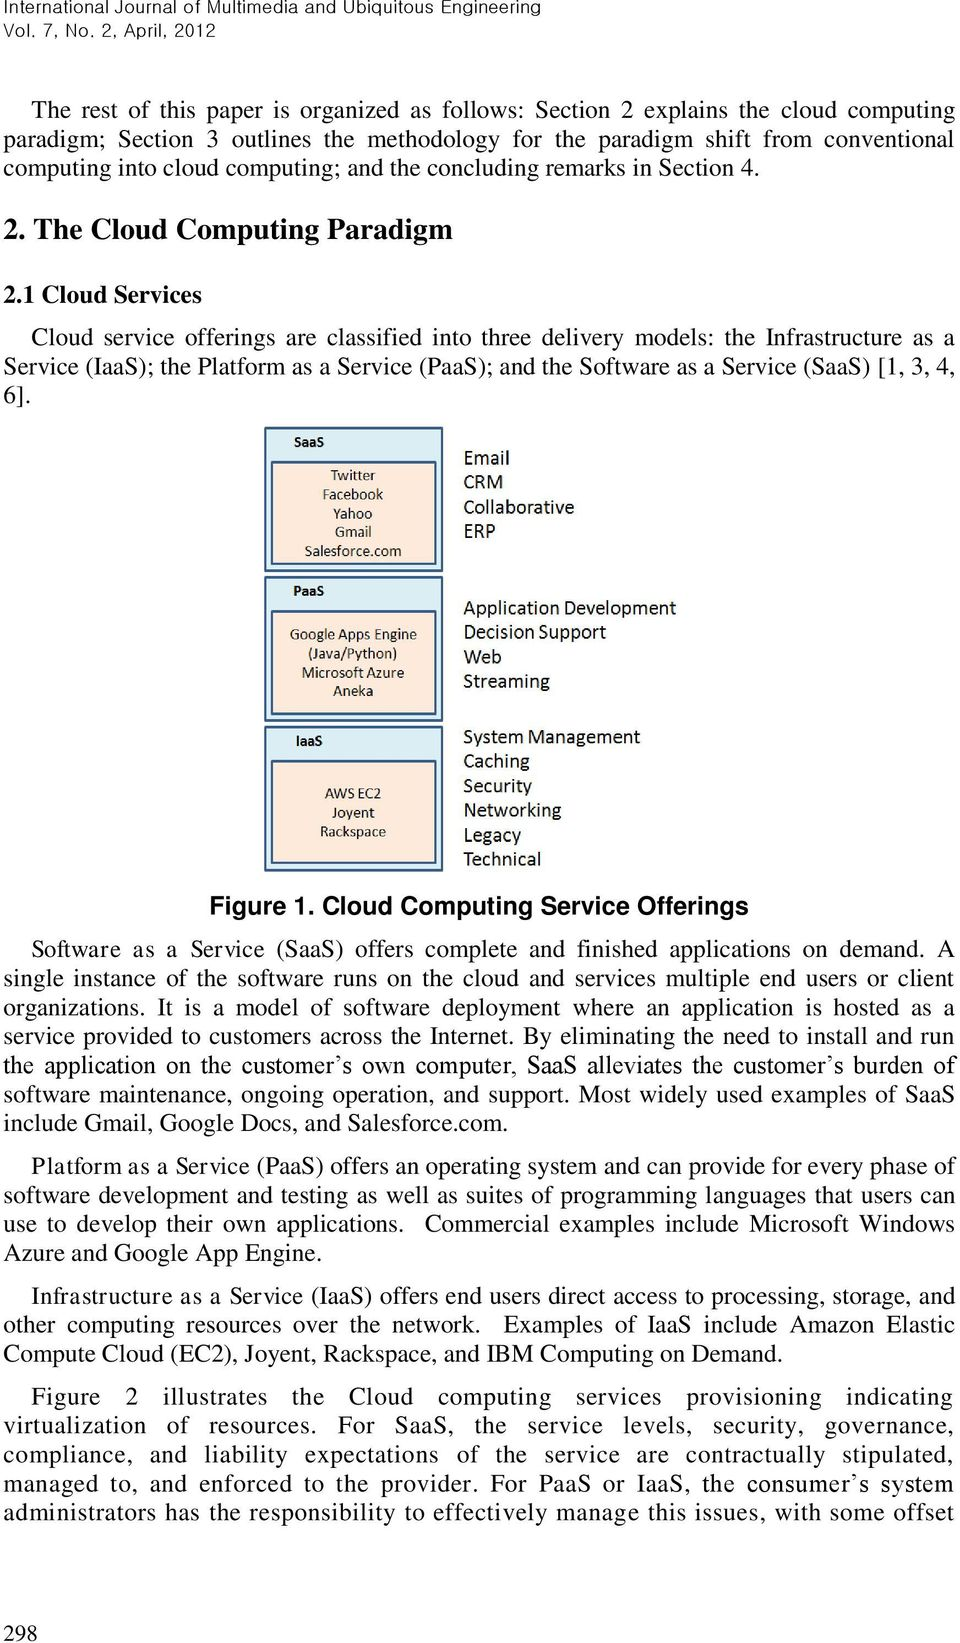 1 Cloud Services Cloud service offerings are classified into three delivery models: the Infrastructure as a Service (IaaS); the Platform as a Service (PaaS); and the Software as a Service (SaaS) [1,